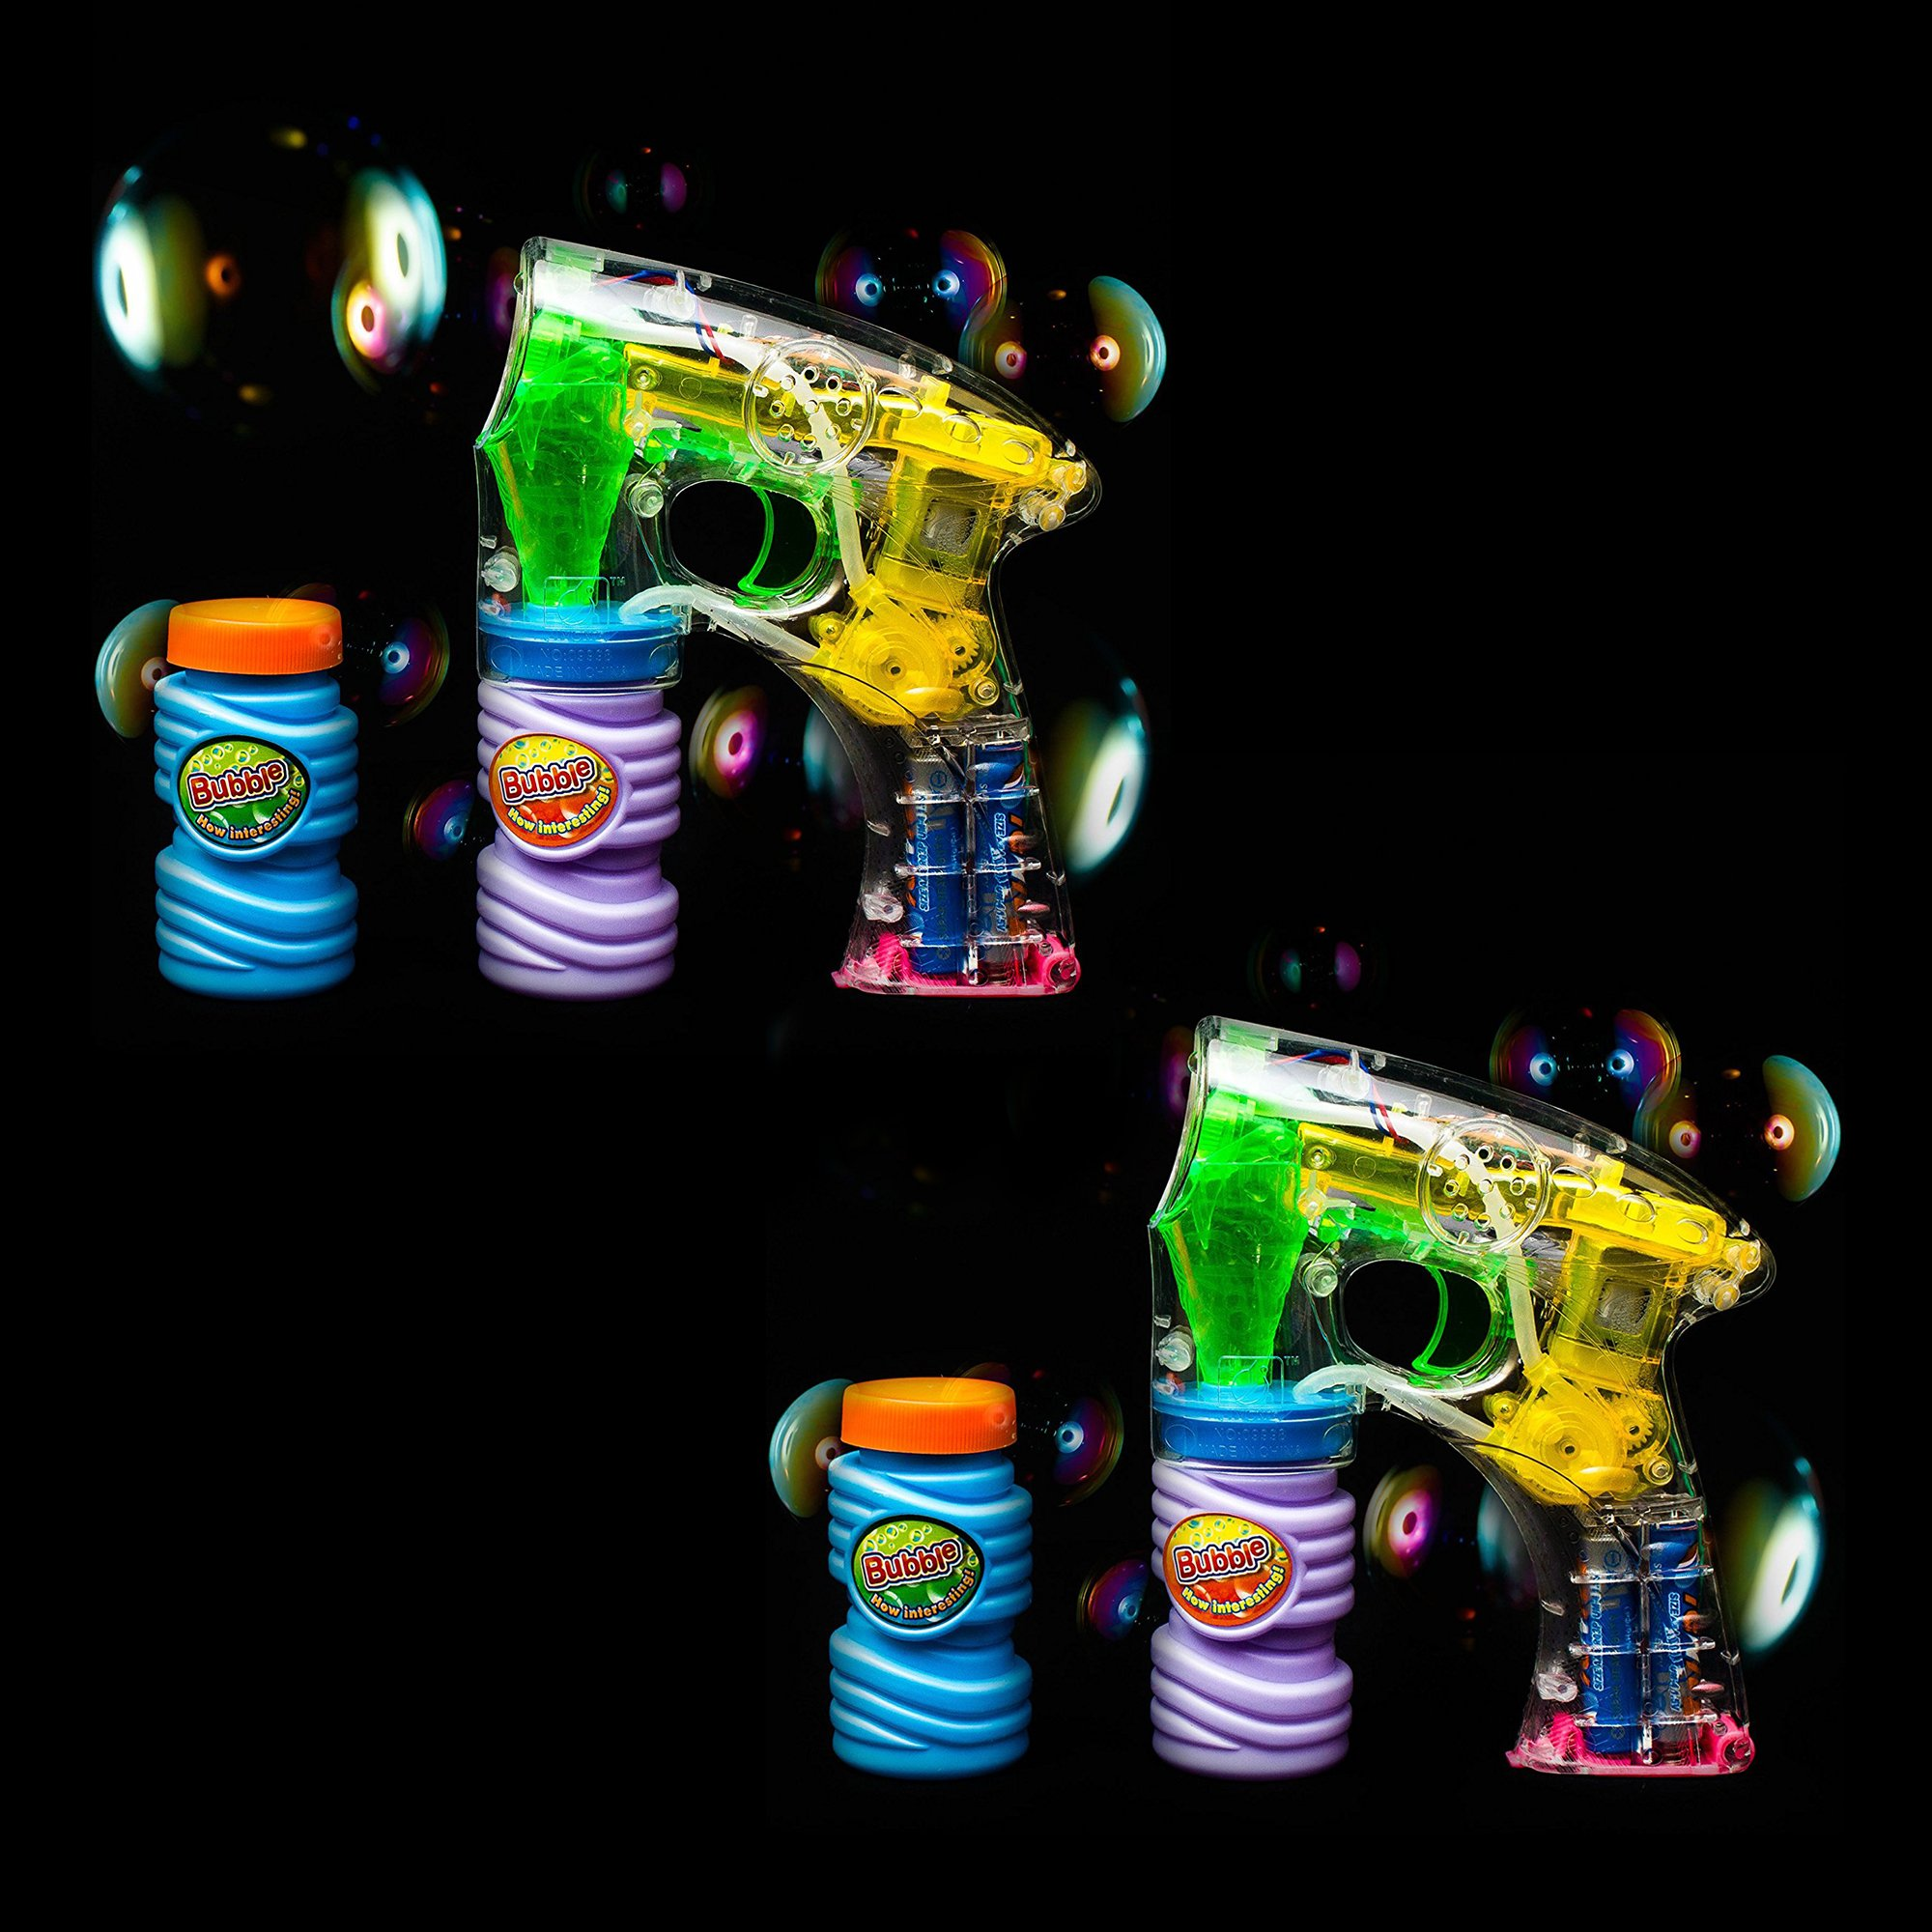 Fun Central C205 2 pack 6 inch LED Light Up Bubble Gun, Bubble Gun Blower Set, Toy Light Up Gun, Bubble Guns For Kids